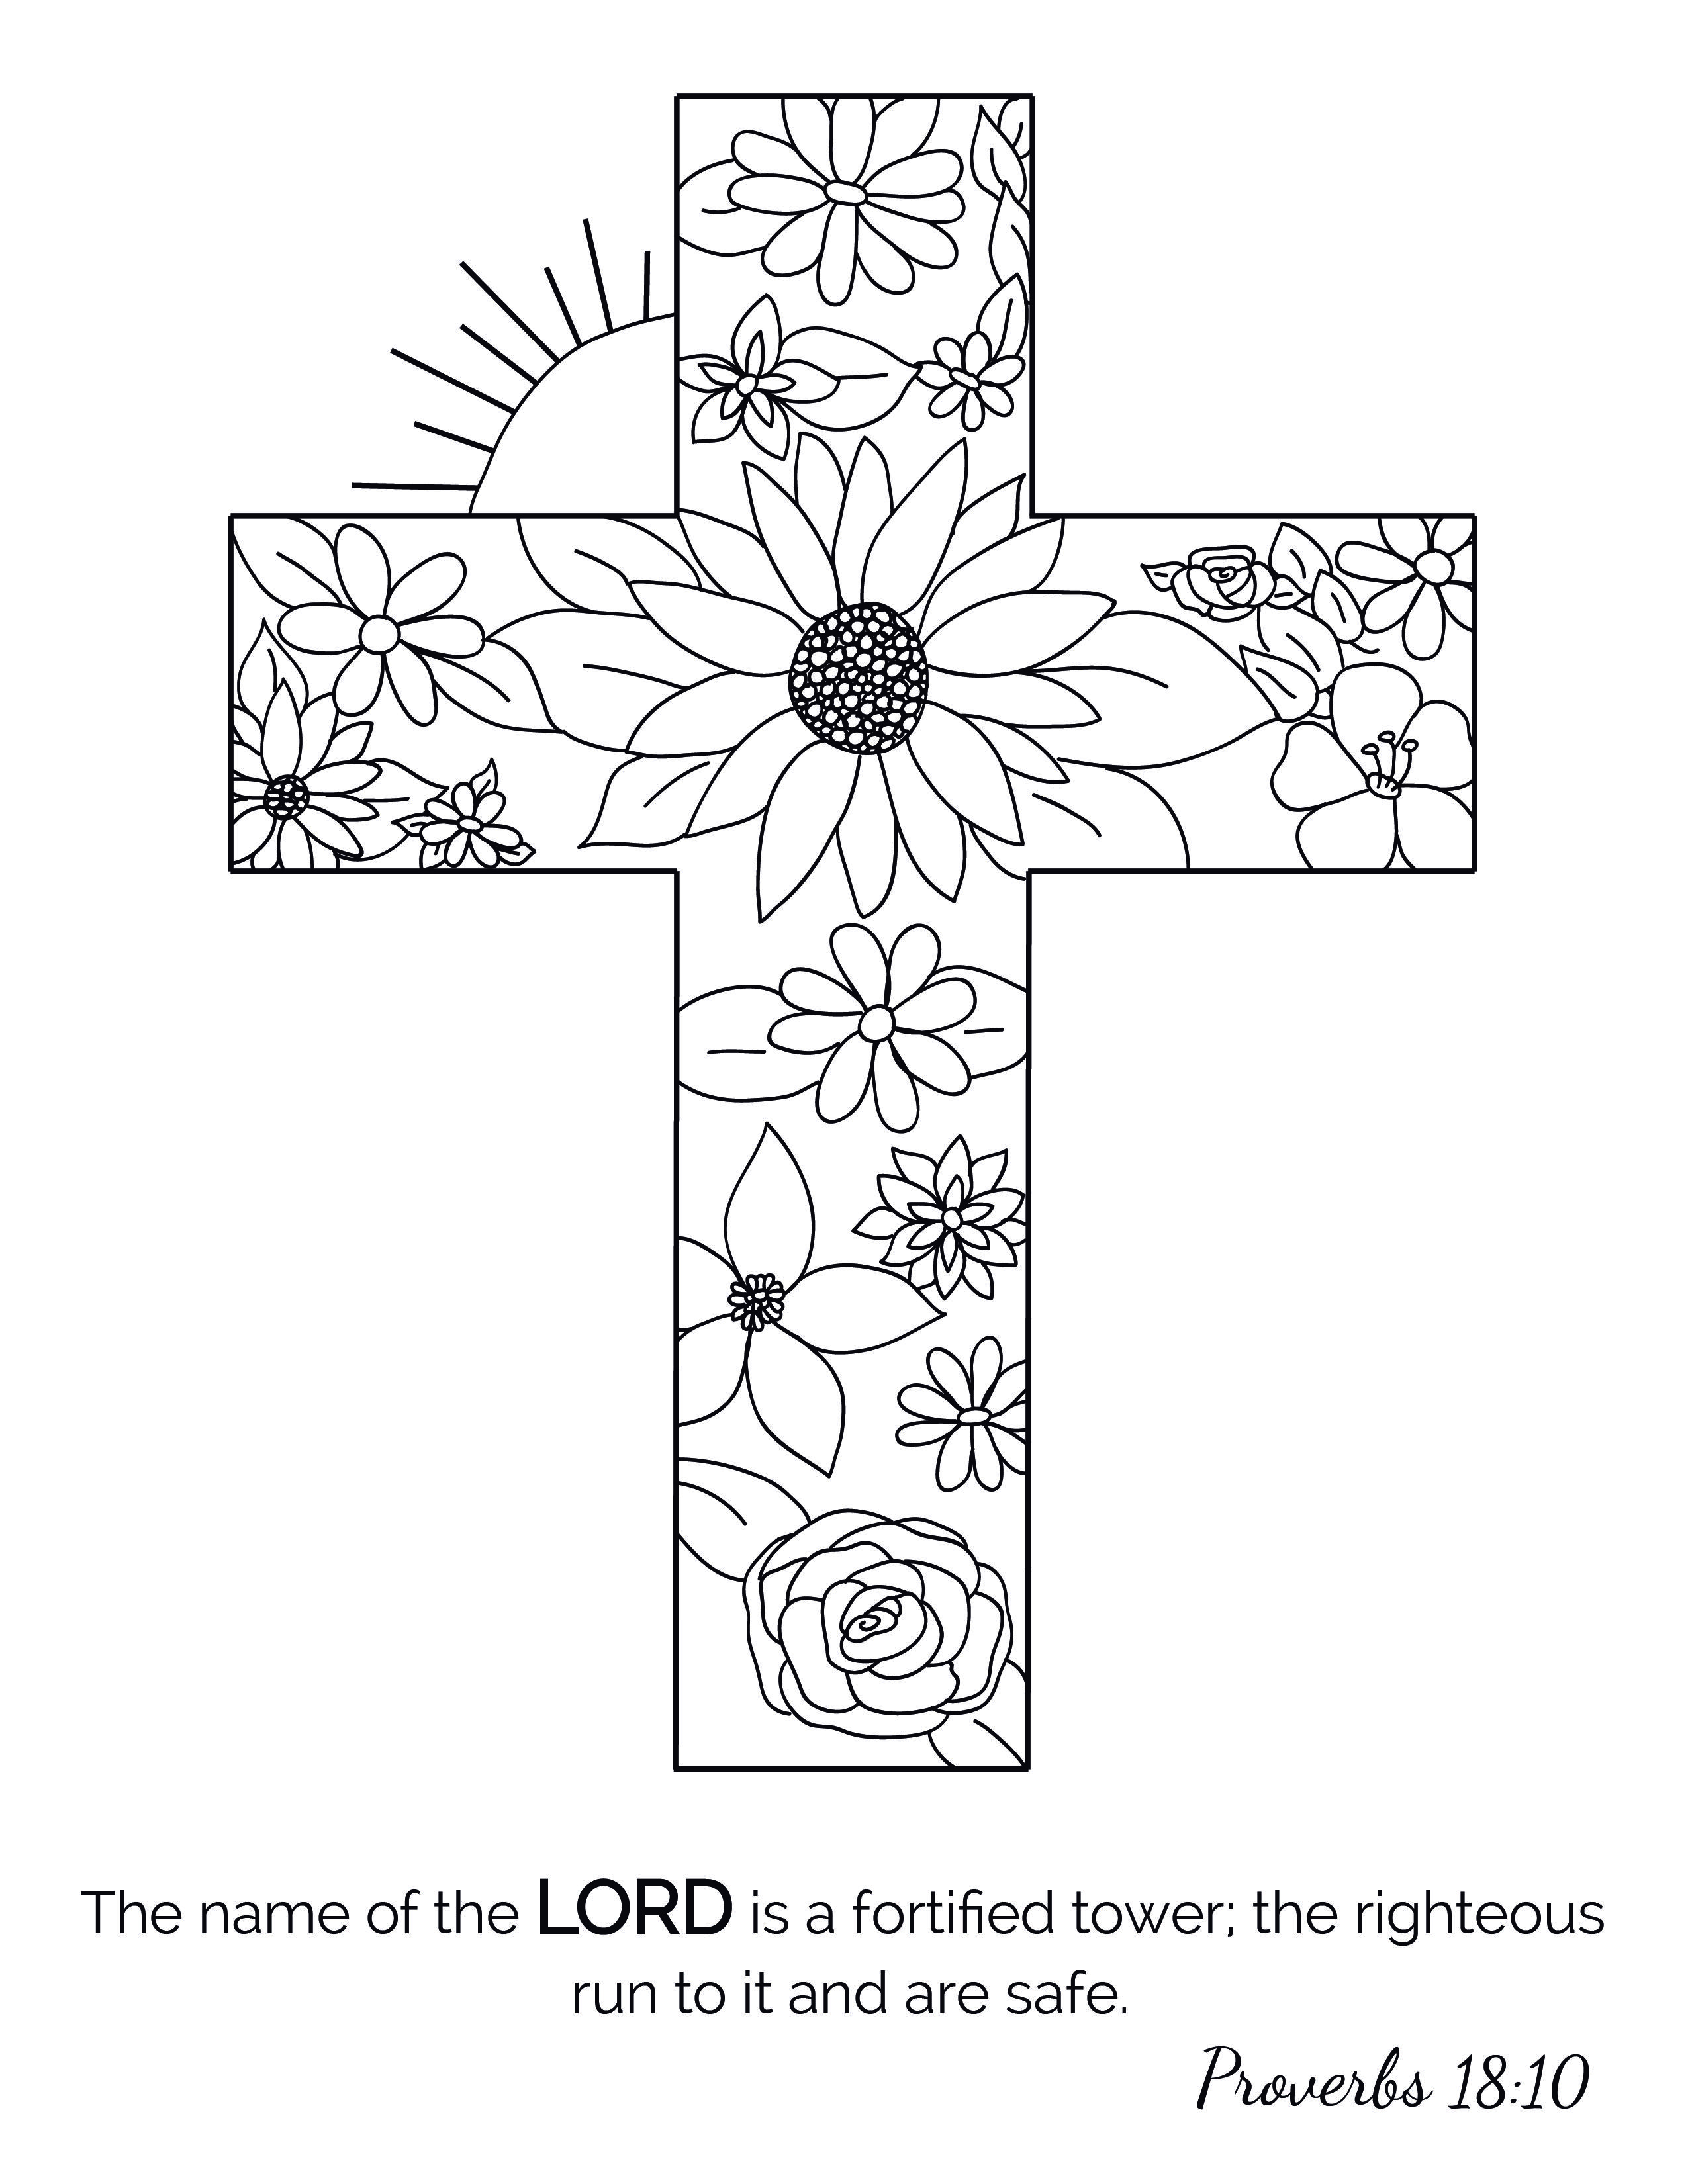 Christian Coloringforadults Coloringbook Coloringpages Coloring Adultcoloring Adultcoloringb Christian Coloring Bible Coloring Pages Cross Coloring Page